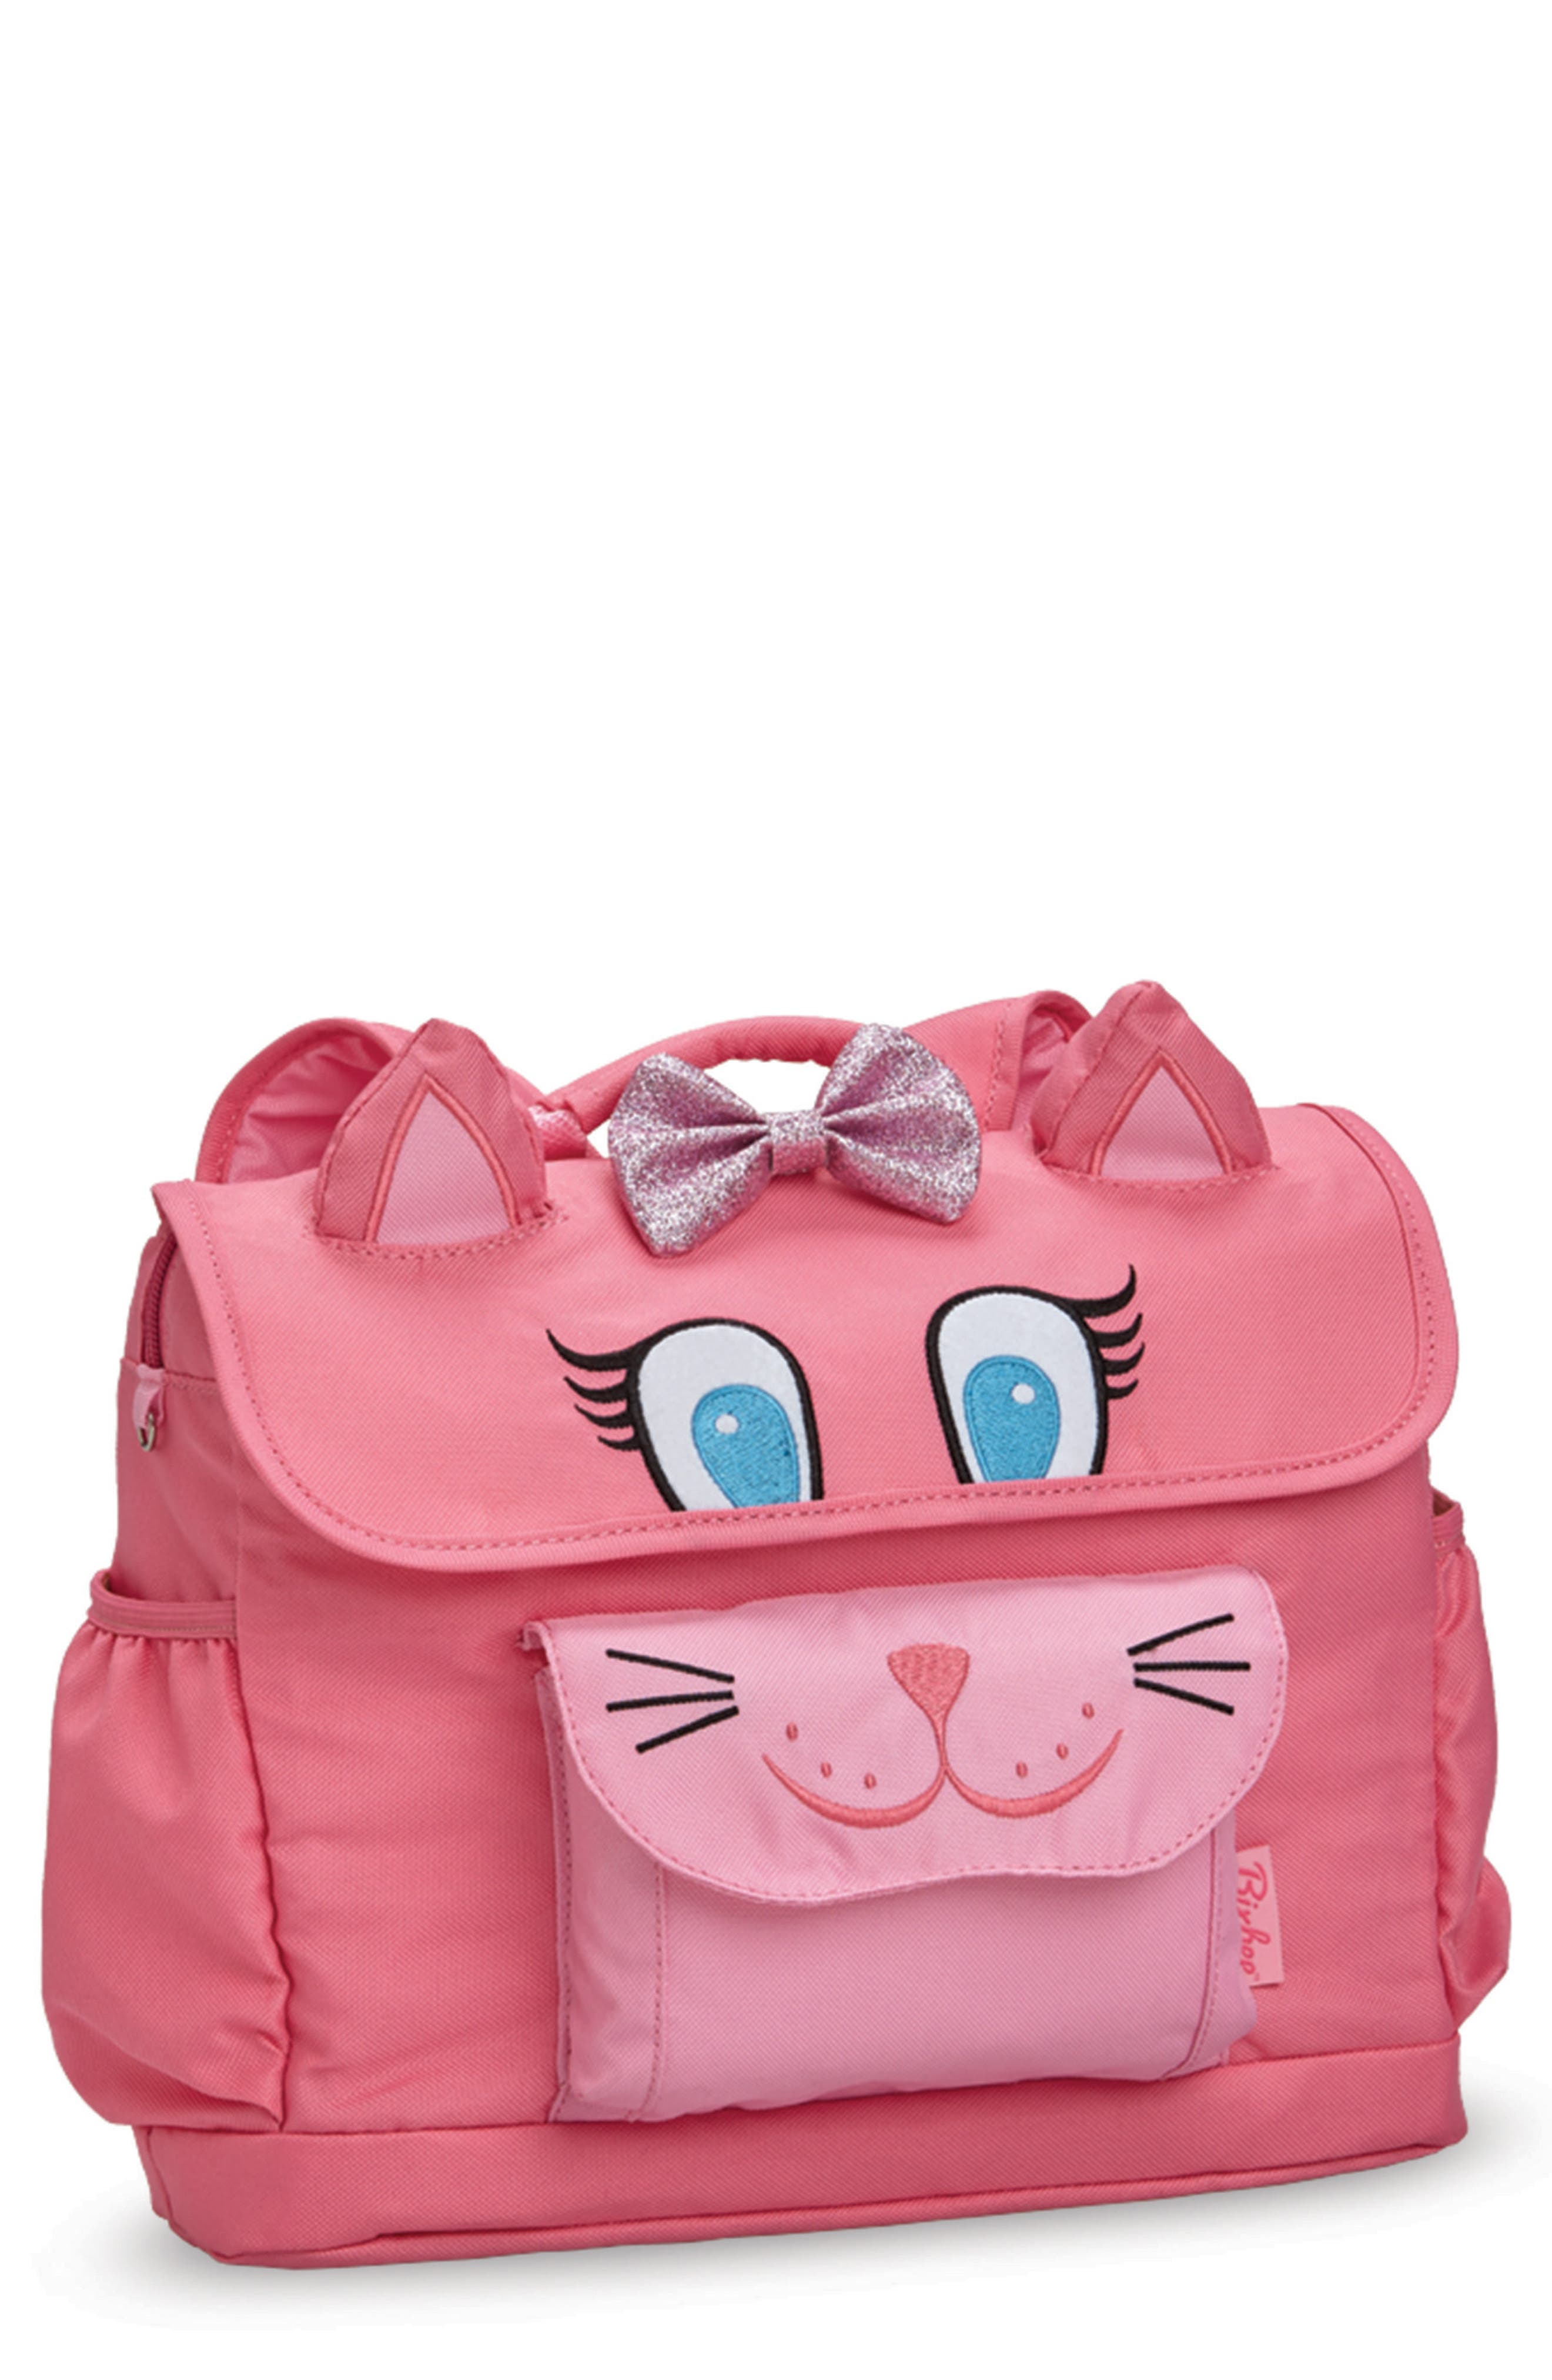 Animal Pack-Kitty Water Resistant Backpack,                             Main thumbnail 1, color,                             650